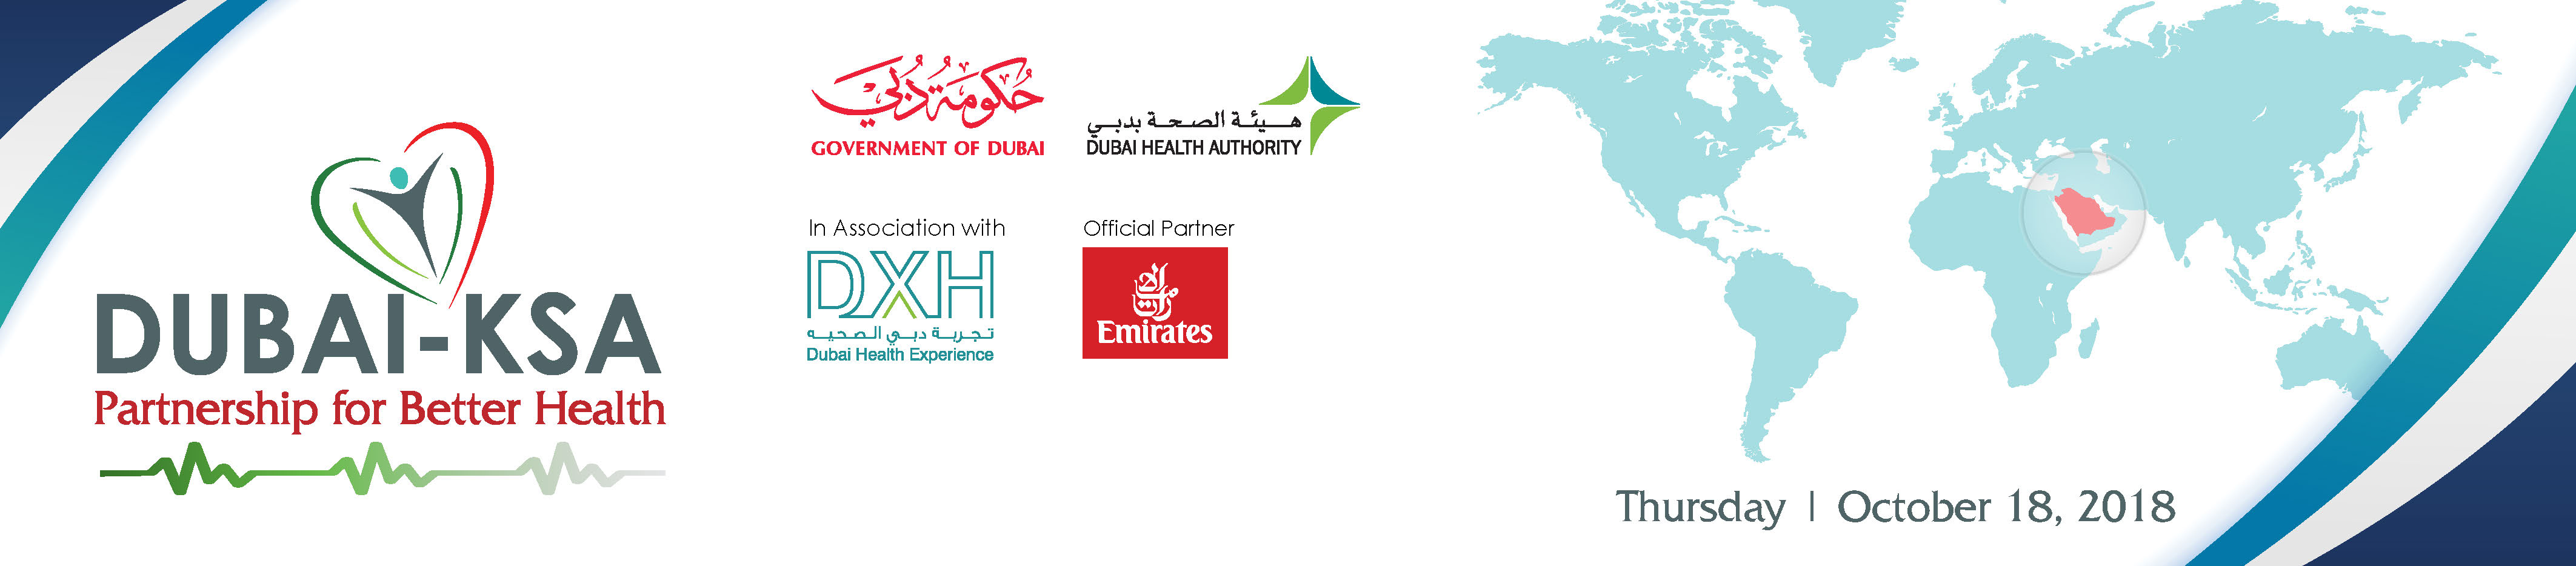 Dubai-KSA Partnership for Better Health Roadshow